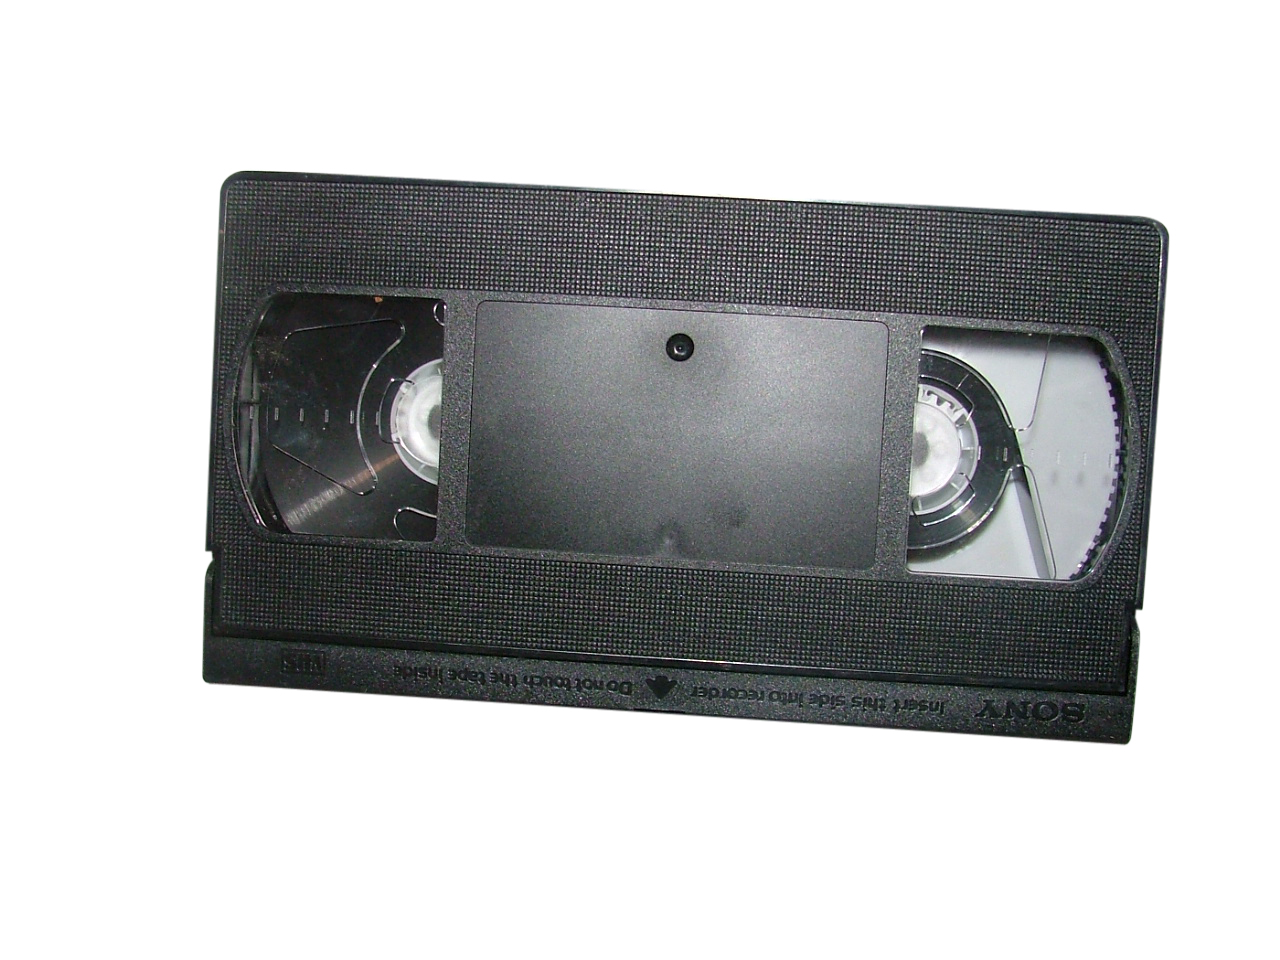 picture of a VHS